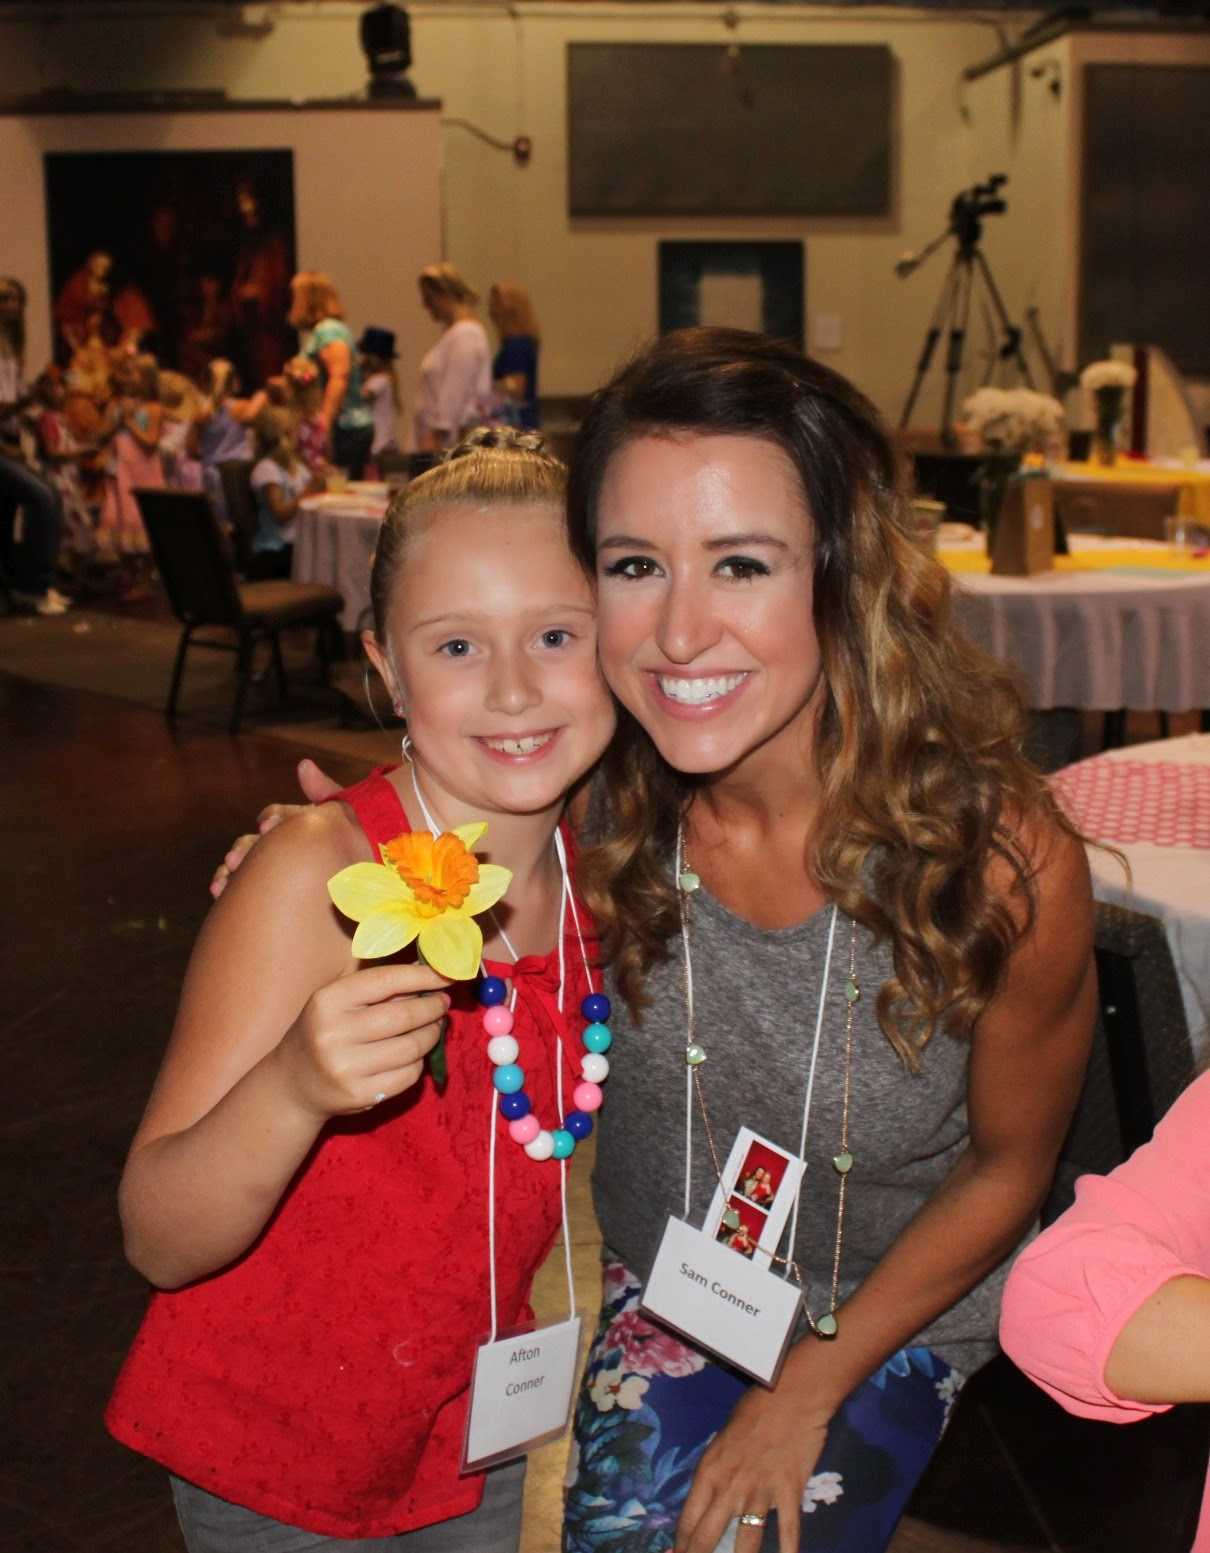 Crafty Texas Girls 5 Craft Ideas For Mothers And Daughters